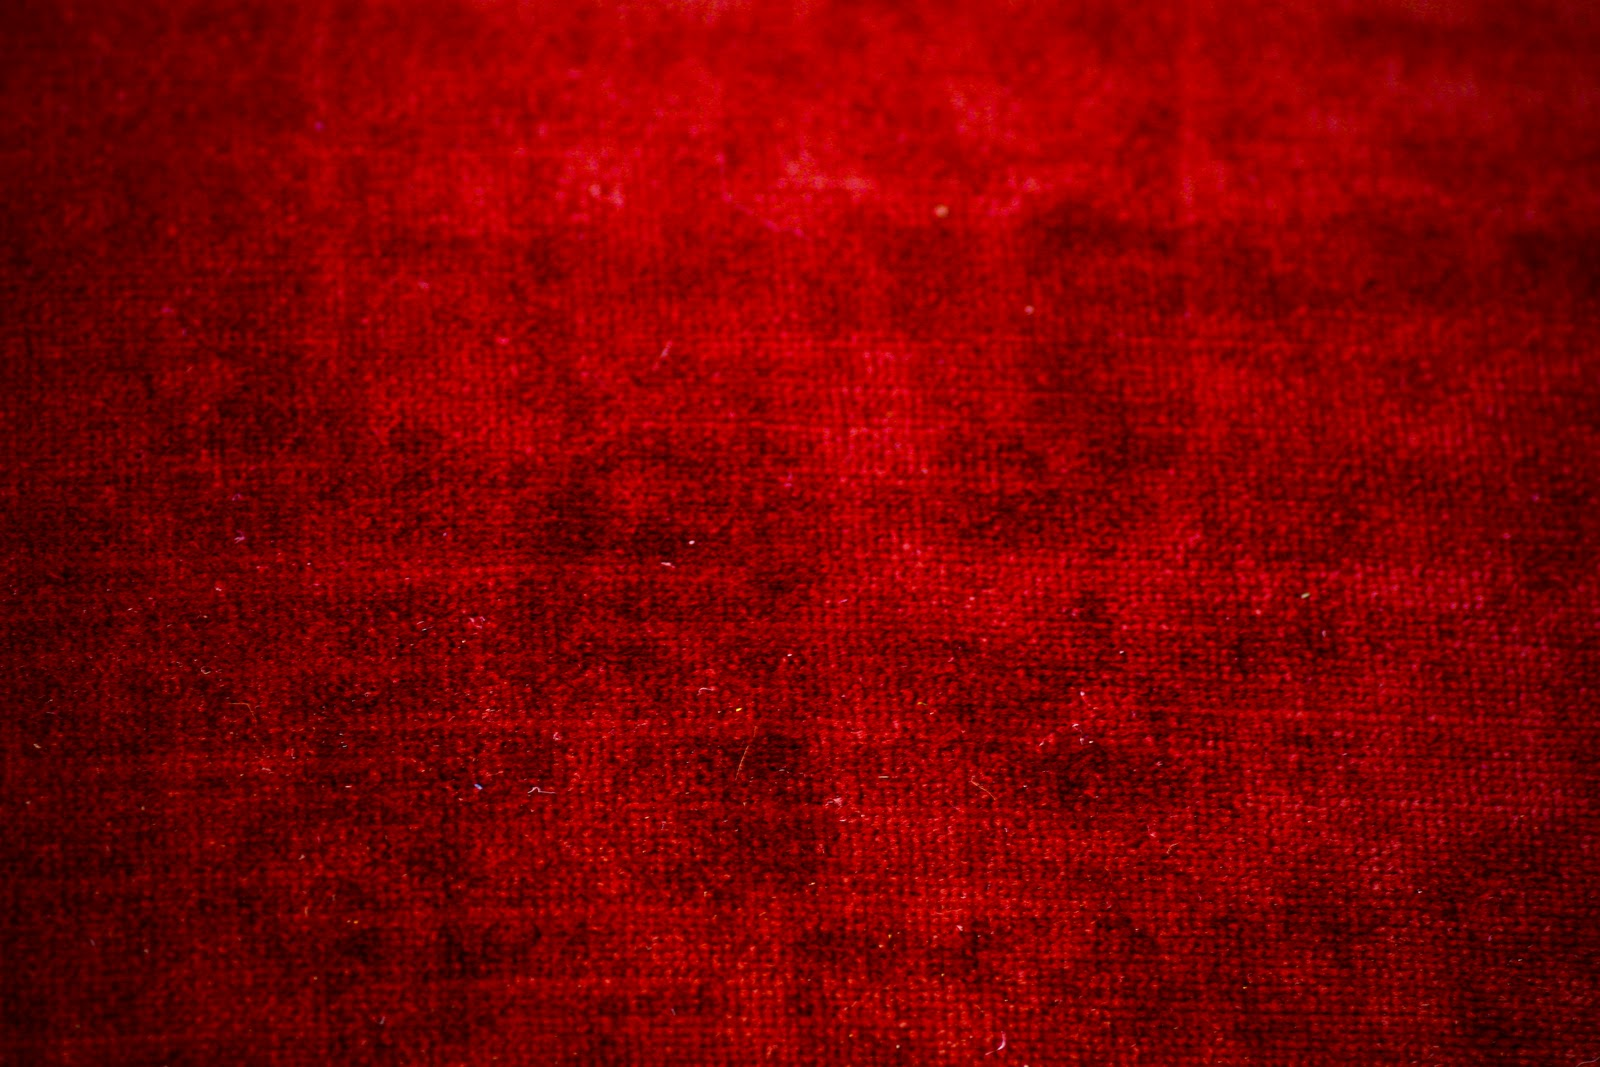 HD Red Texture Wallpapers | Hd Wallpapers